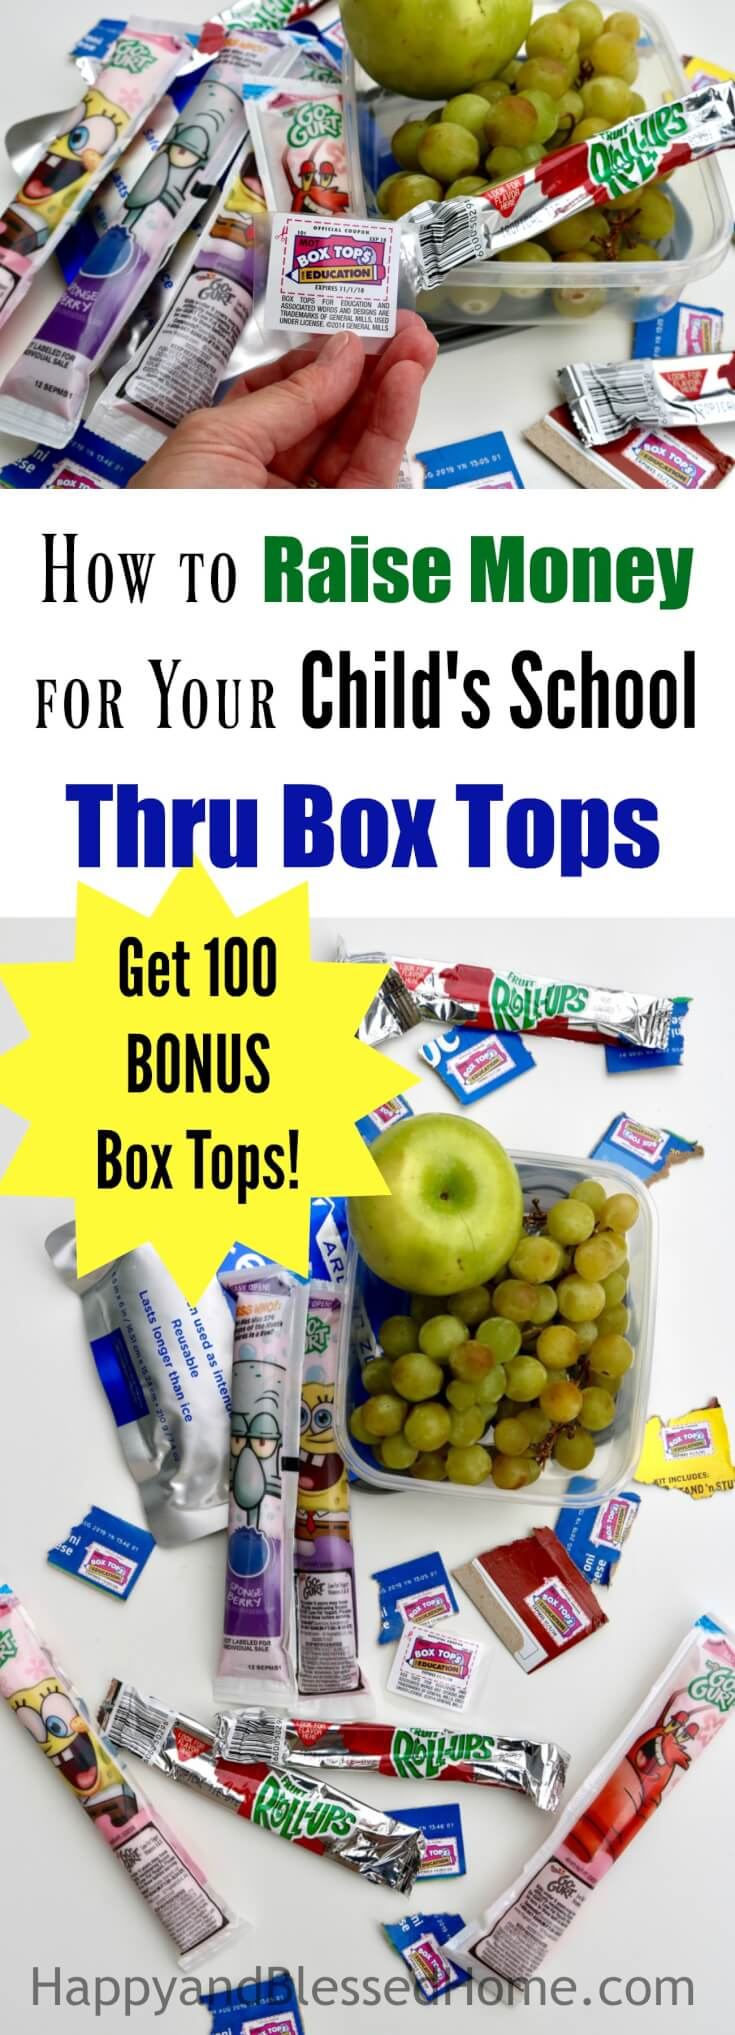 How to Raise Money for Your Child's School Through Box Tops with tips for parents on how to save on school snacks AND get access to 100 Bonus Box Tops!